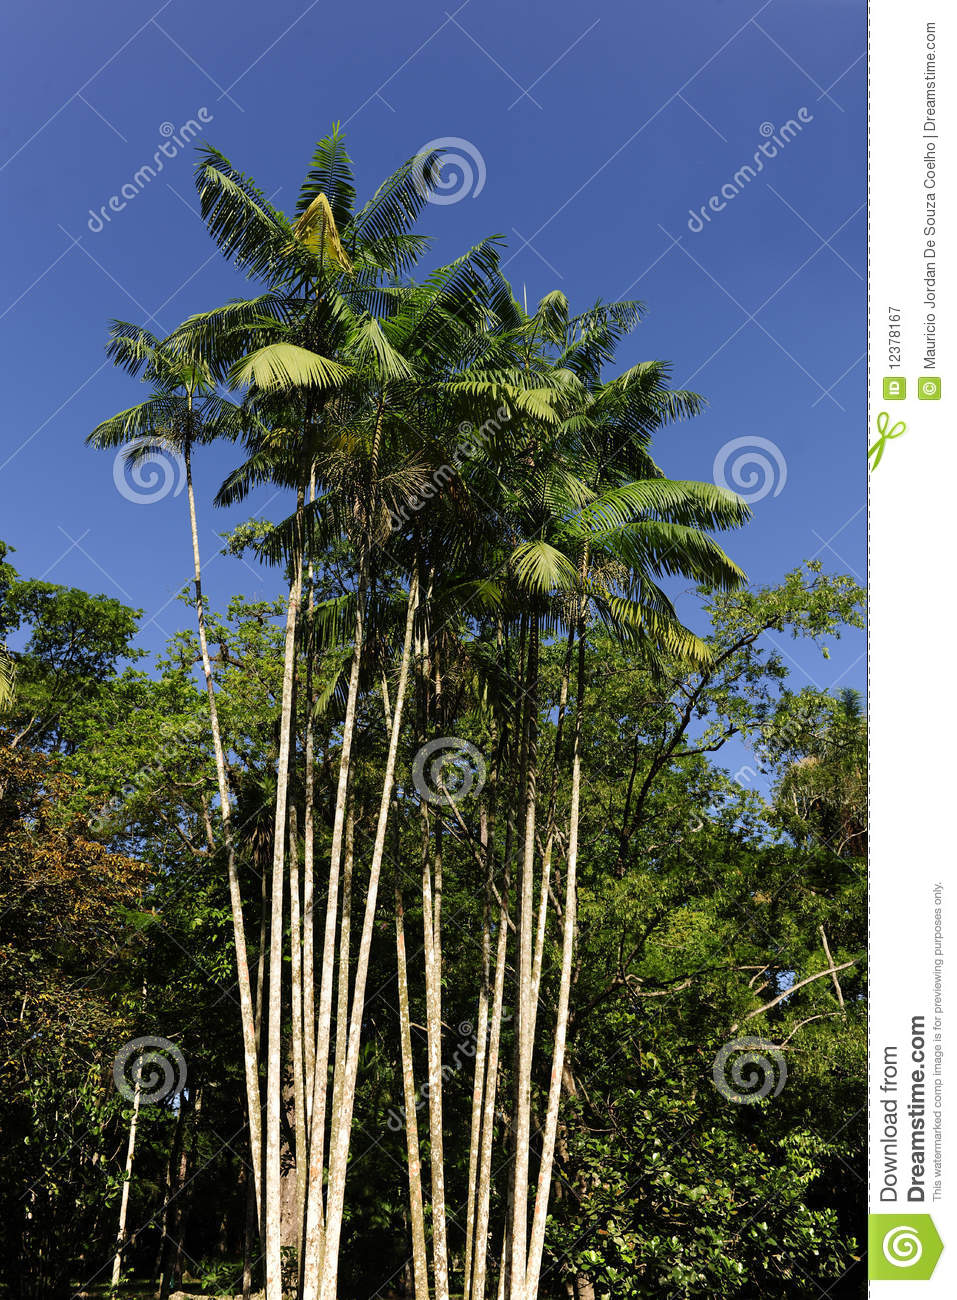 Dreamstime Images Acai Palm Against Blue Sky Stock Image Image Of Green